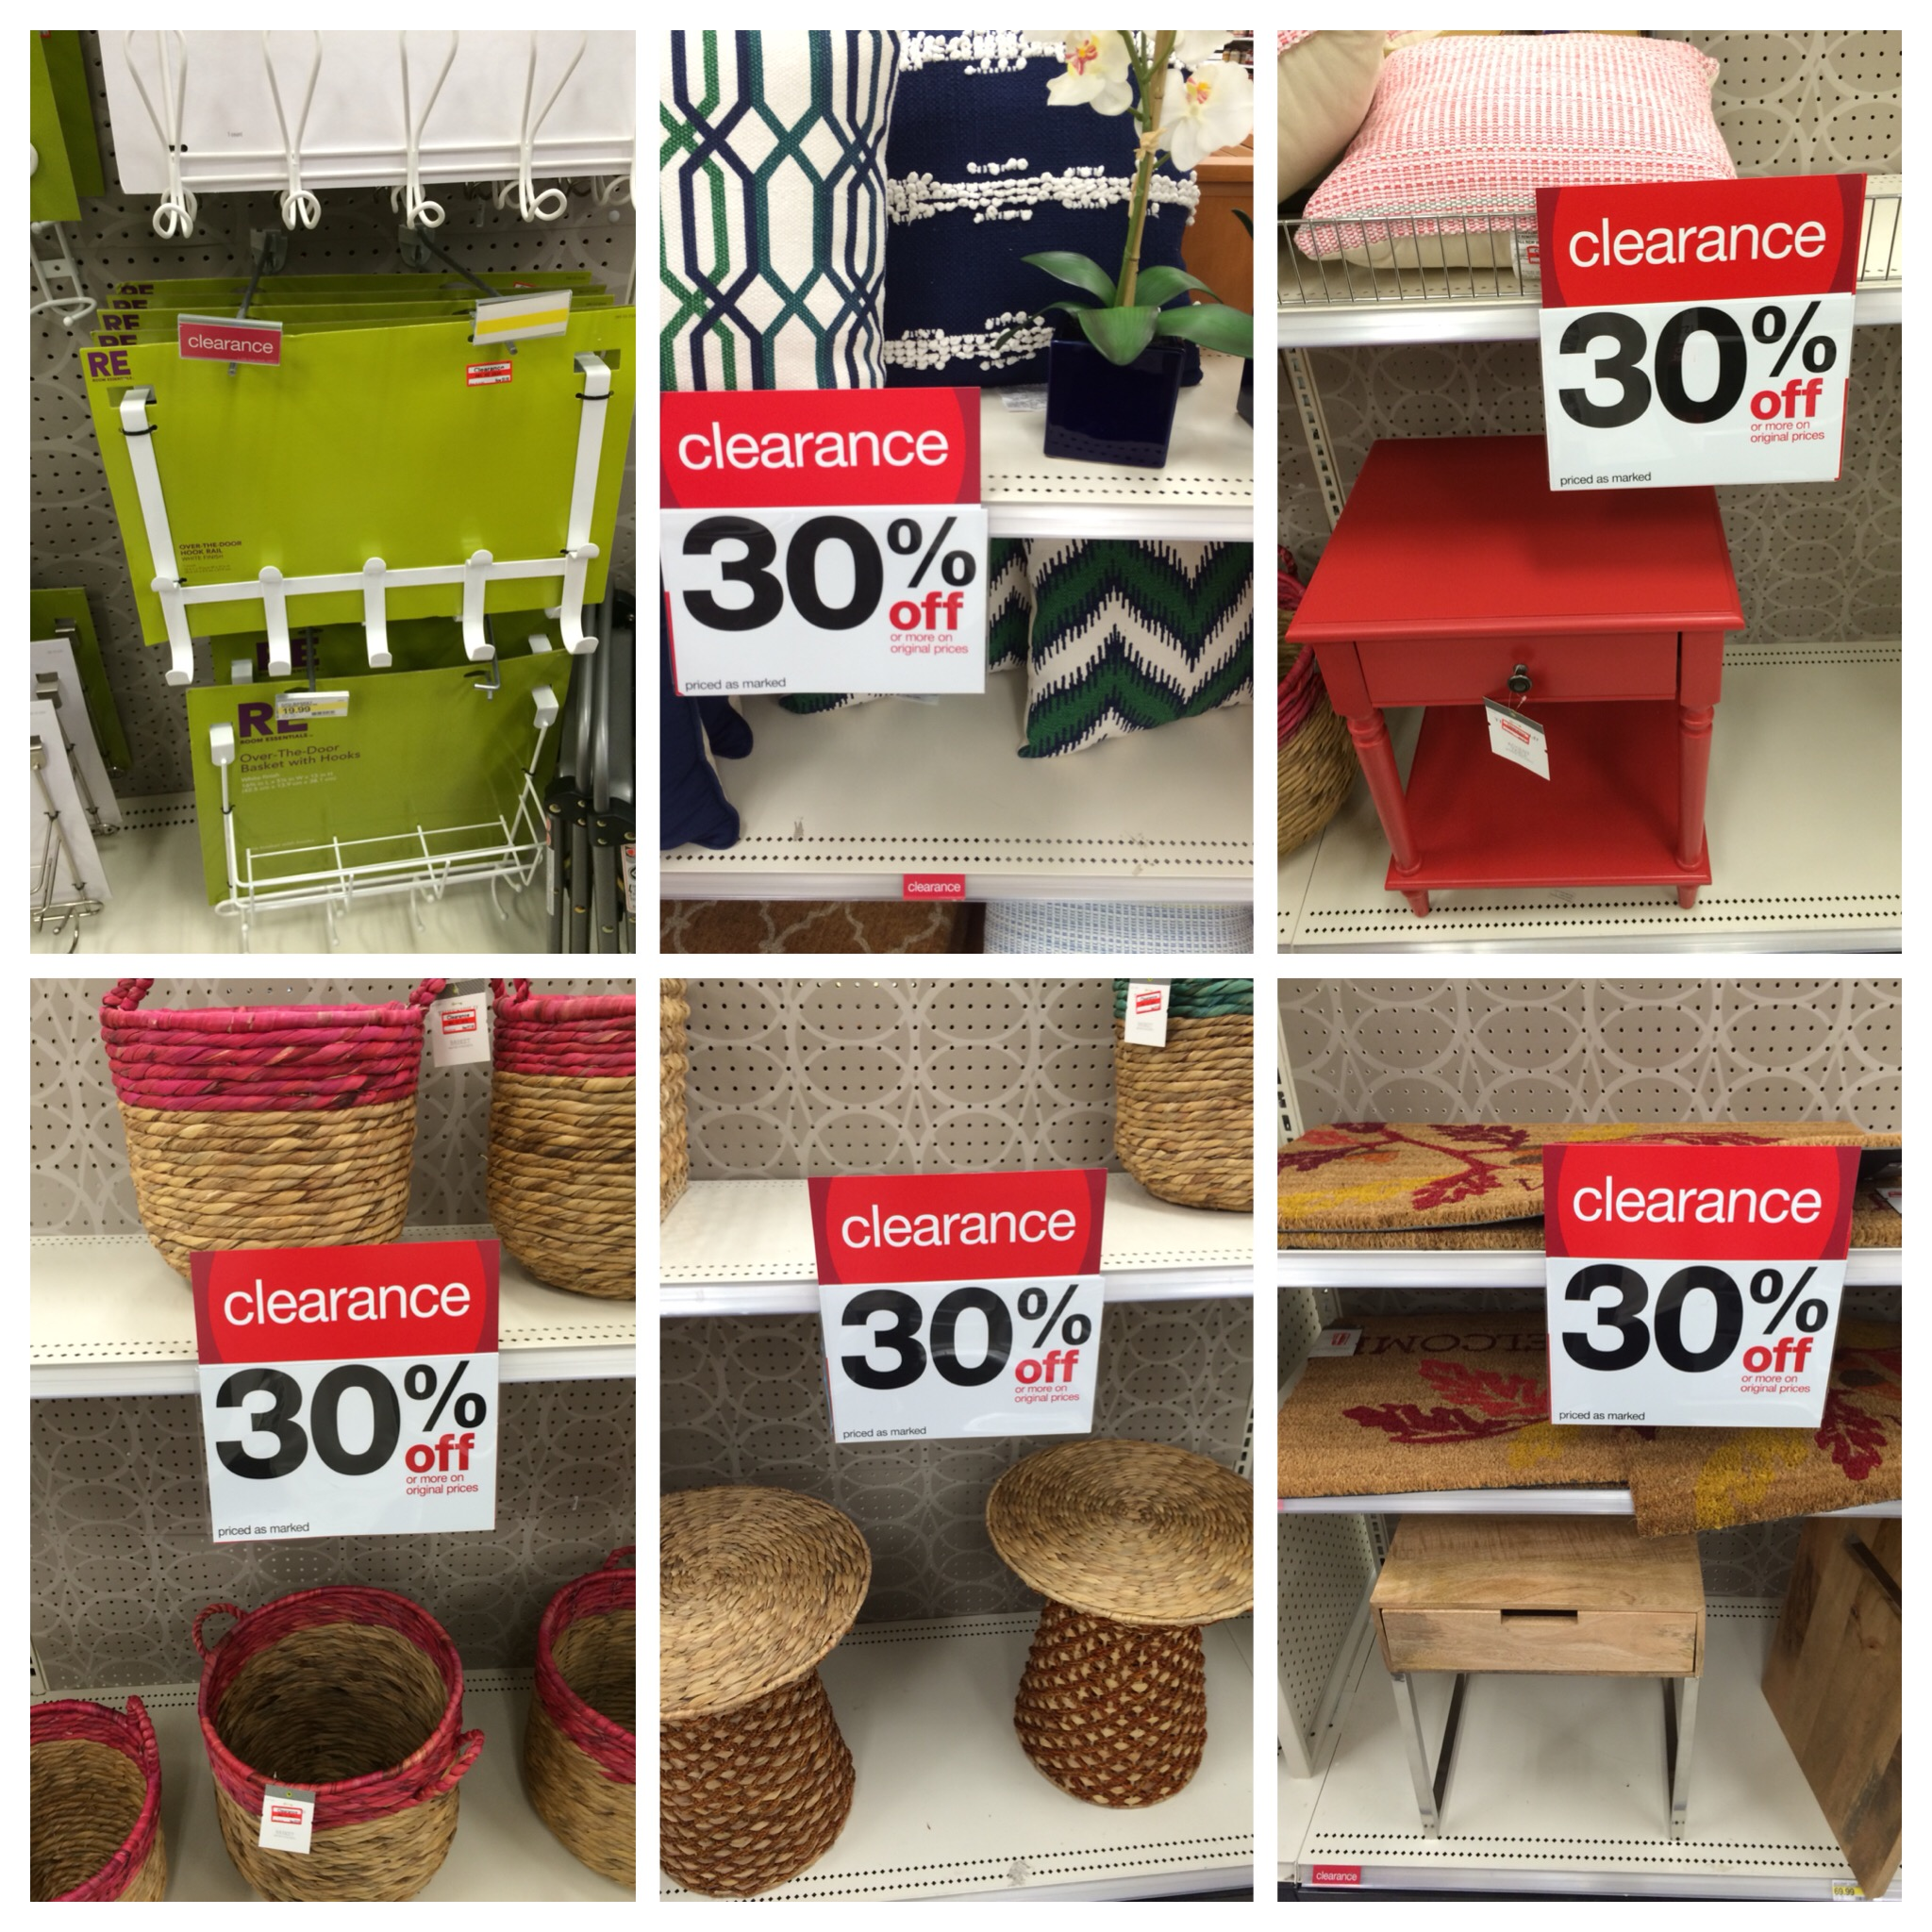 Target Clearance Home Decor Baskets Pillows More